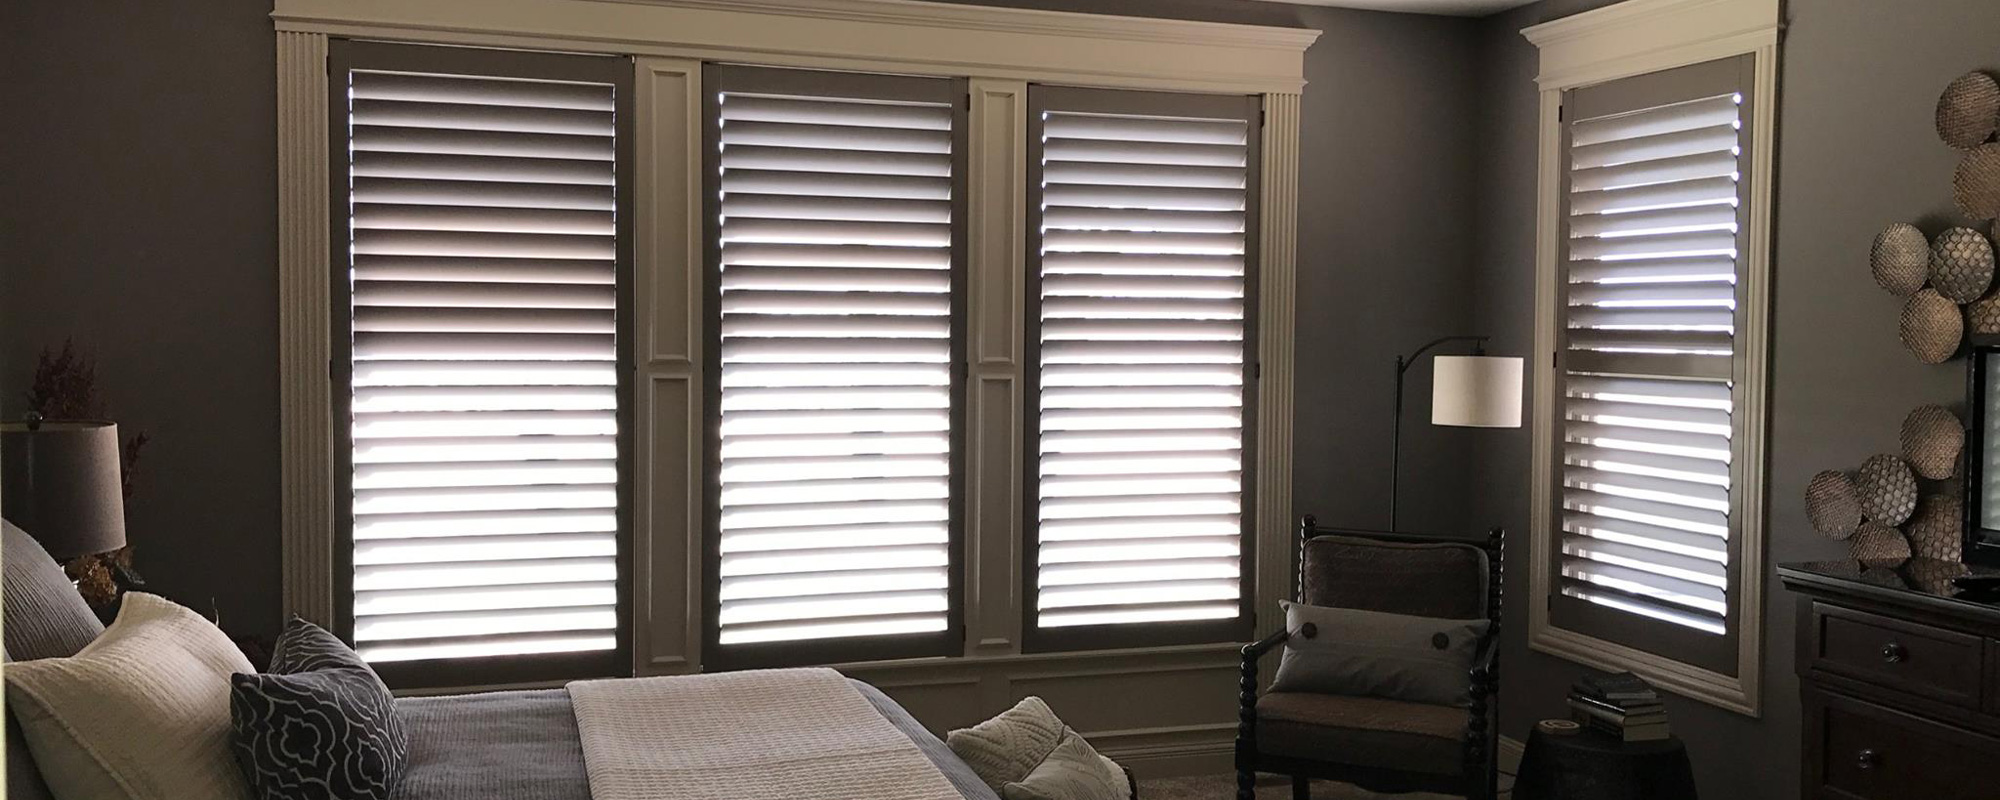 Columbia Blinds Plantation Shutters Roller Shades